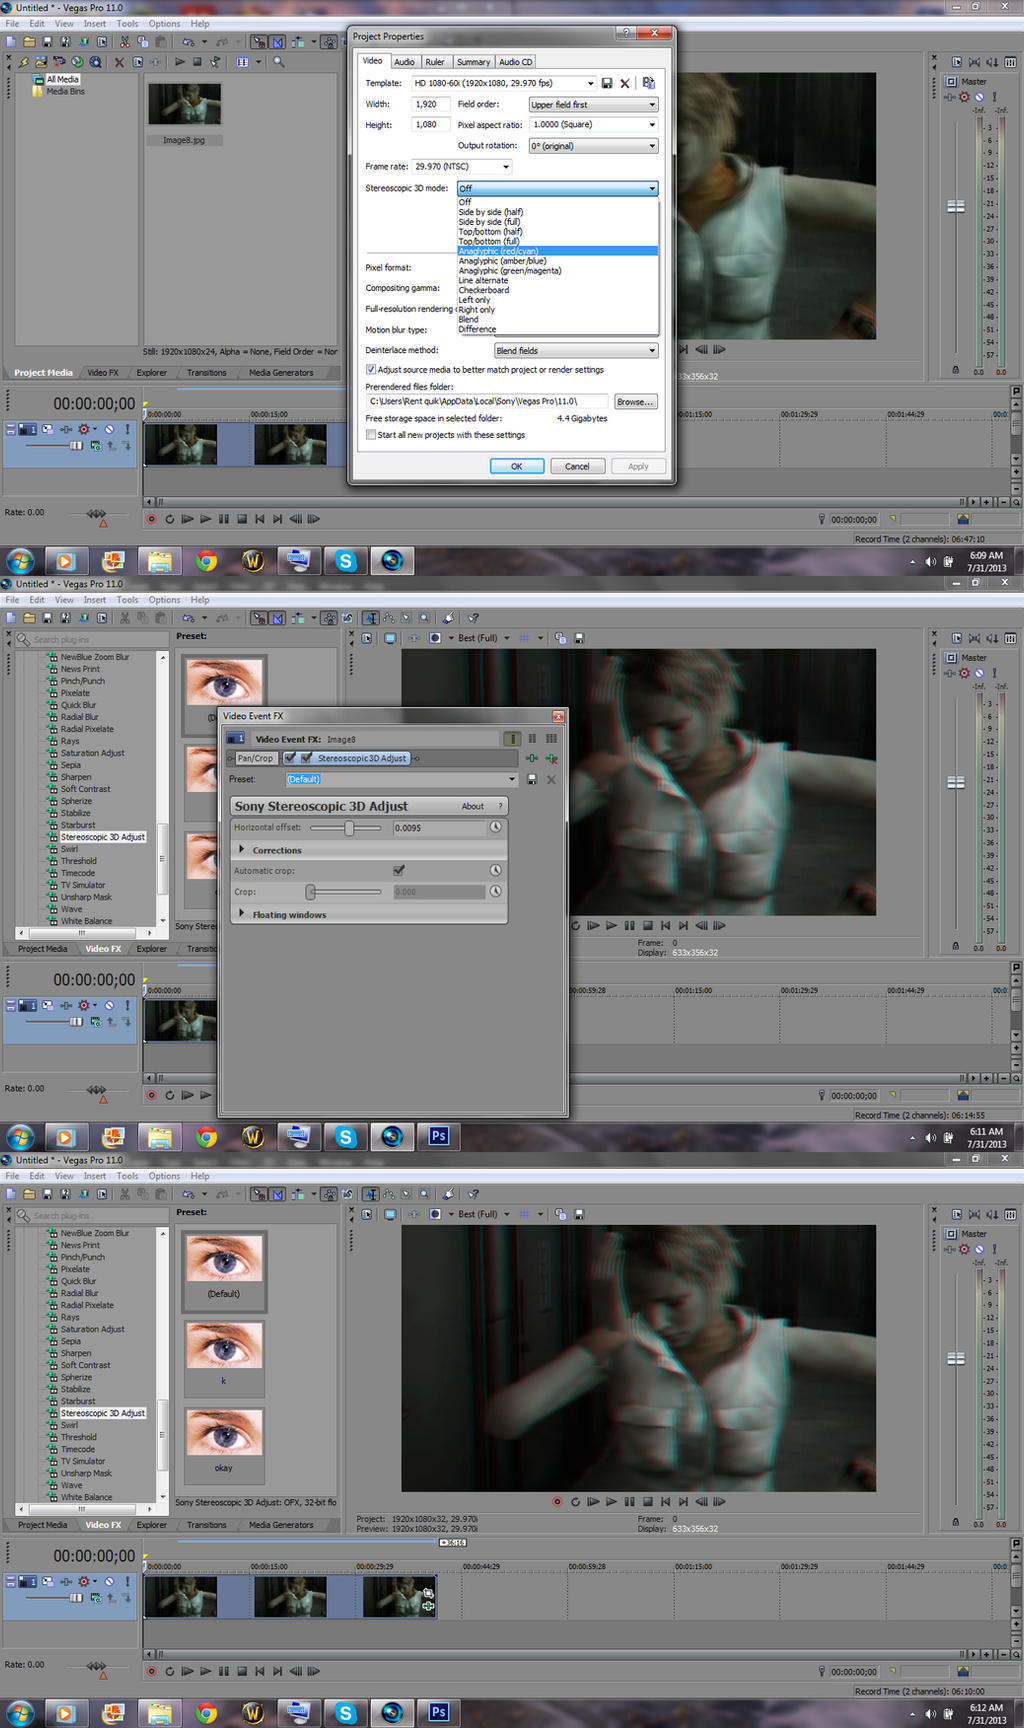 Sony vegas photo slideshow tutorial Cached